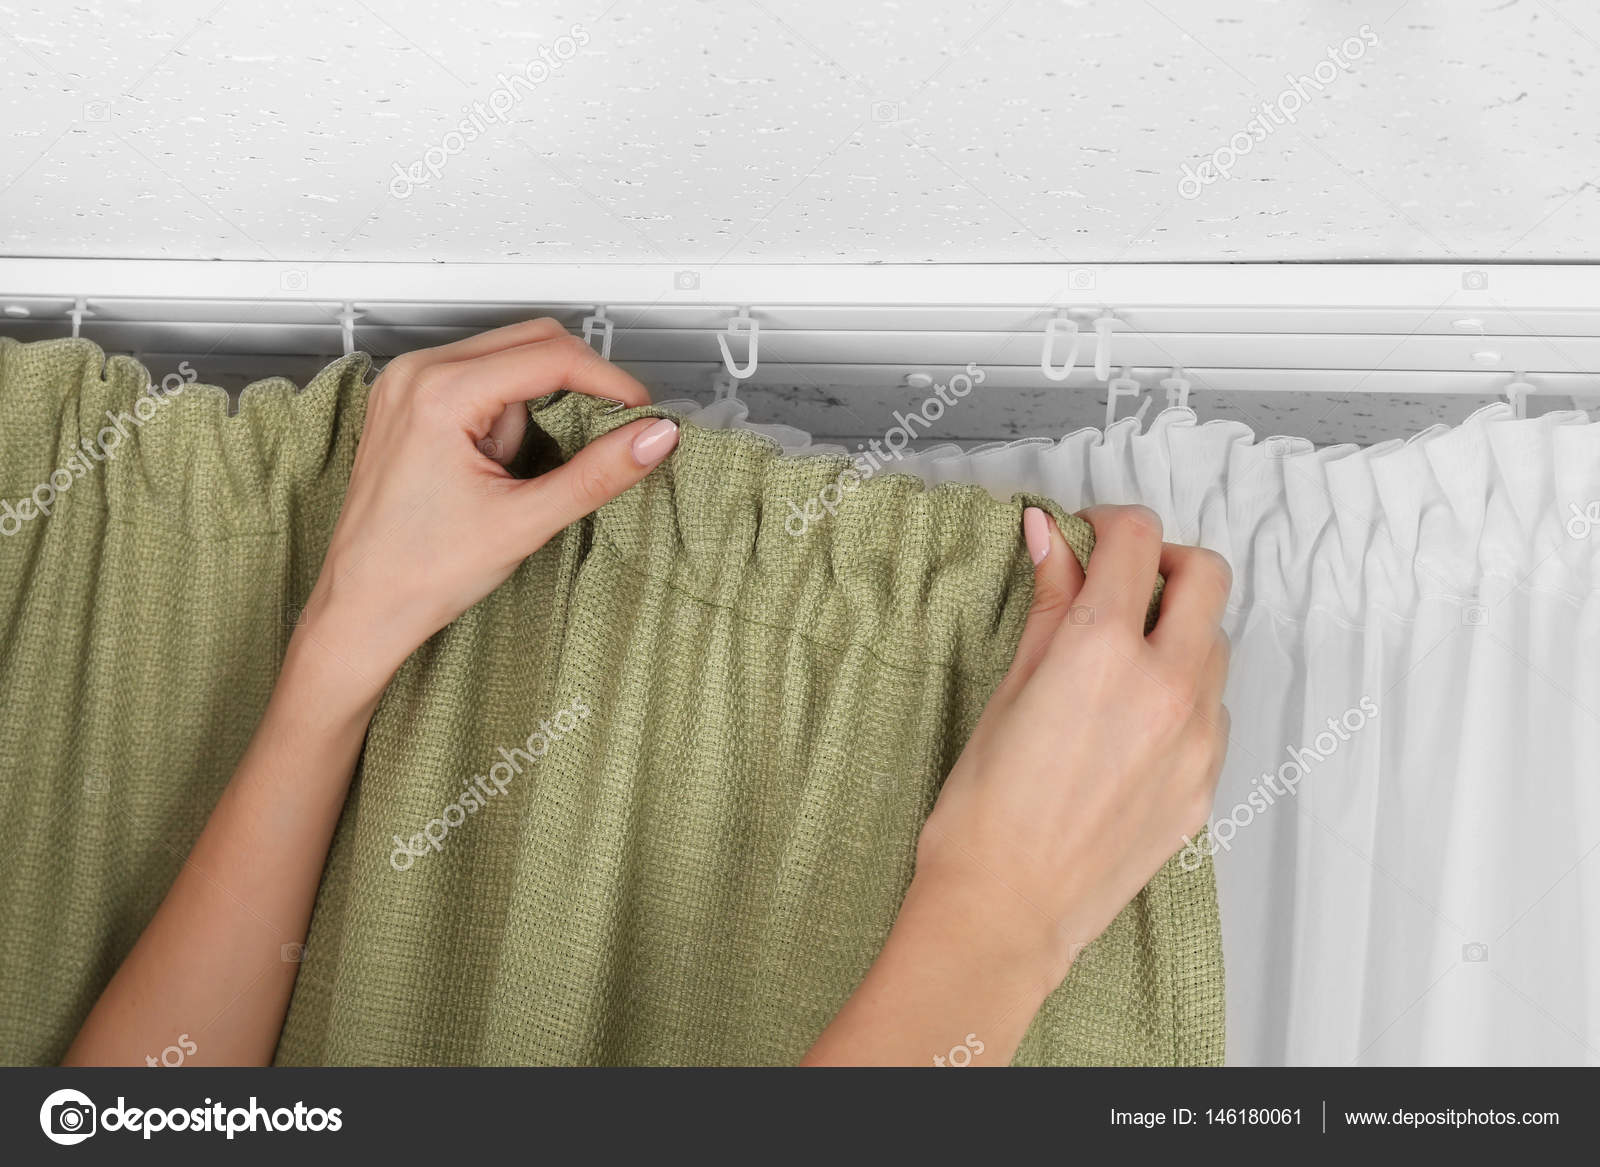 Curtain rods installation